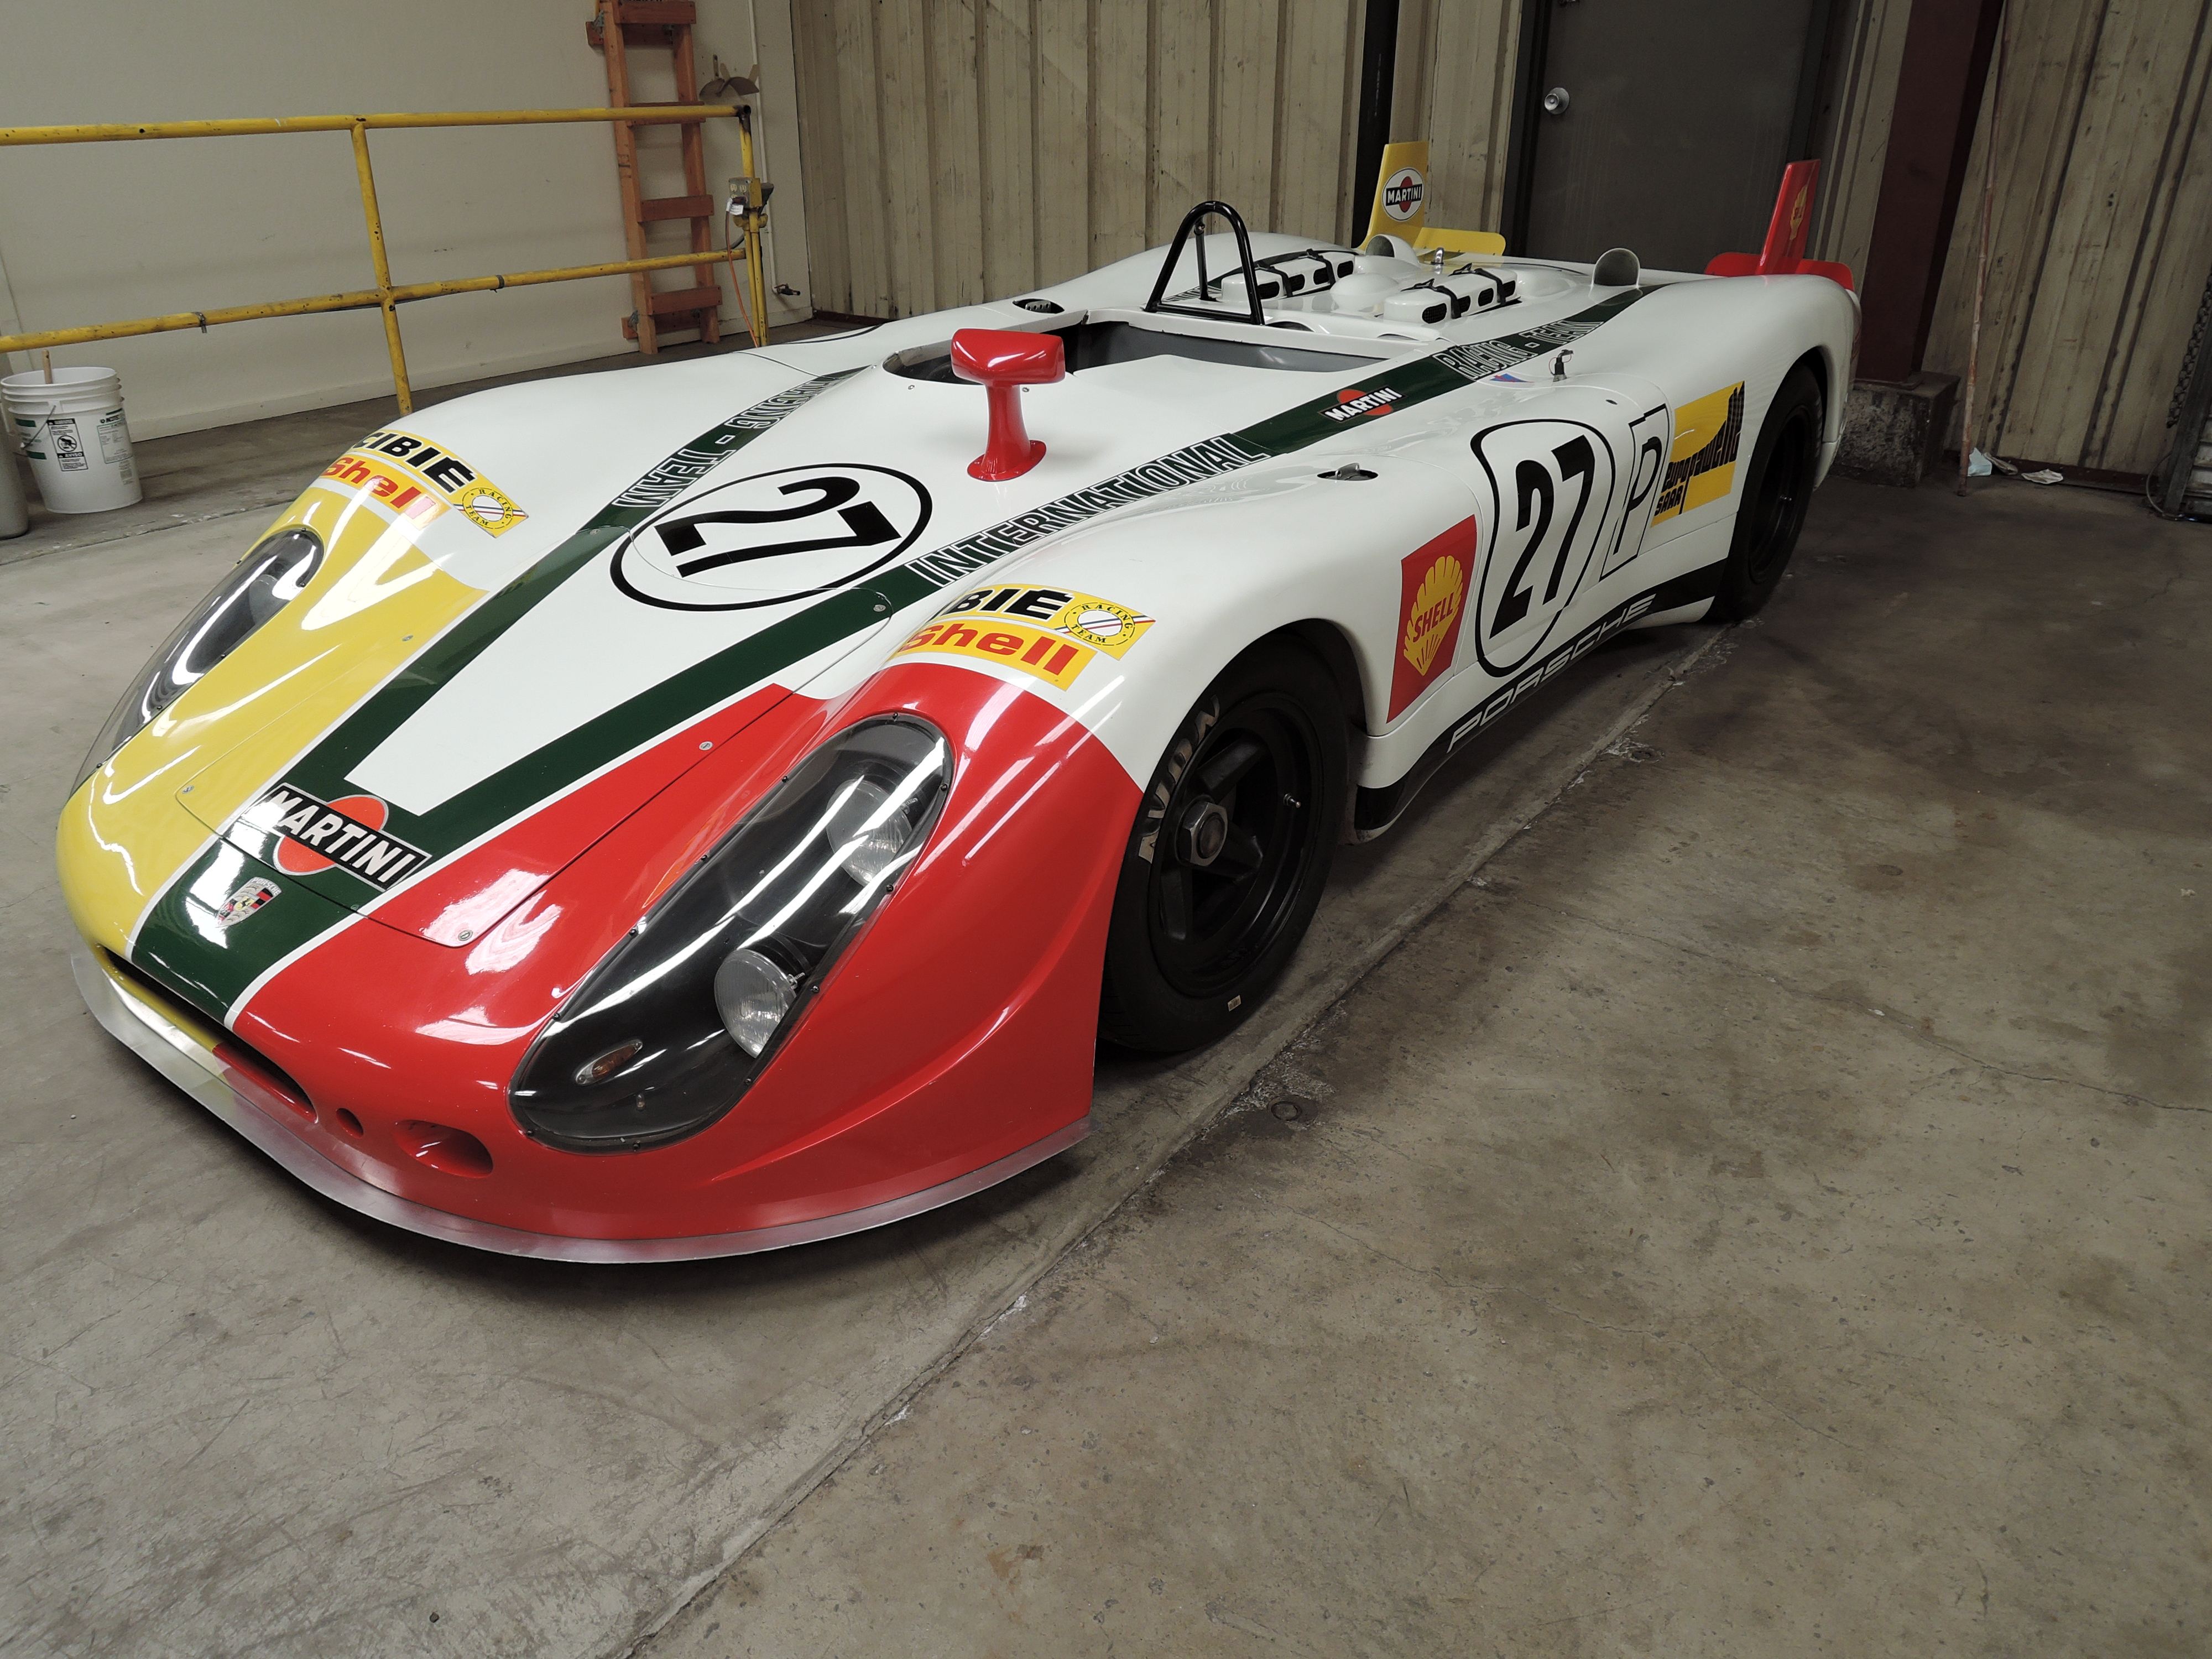 Porsche 917 race car - monterey car week 2015